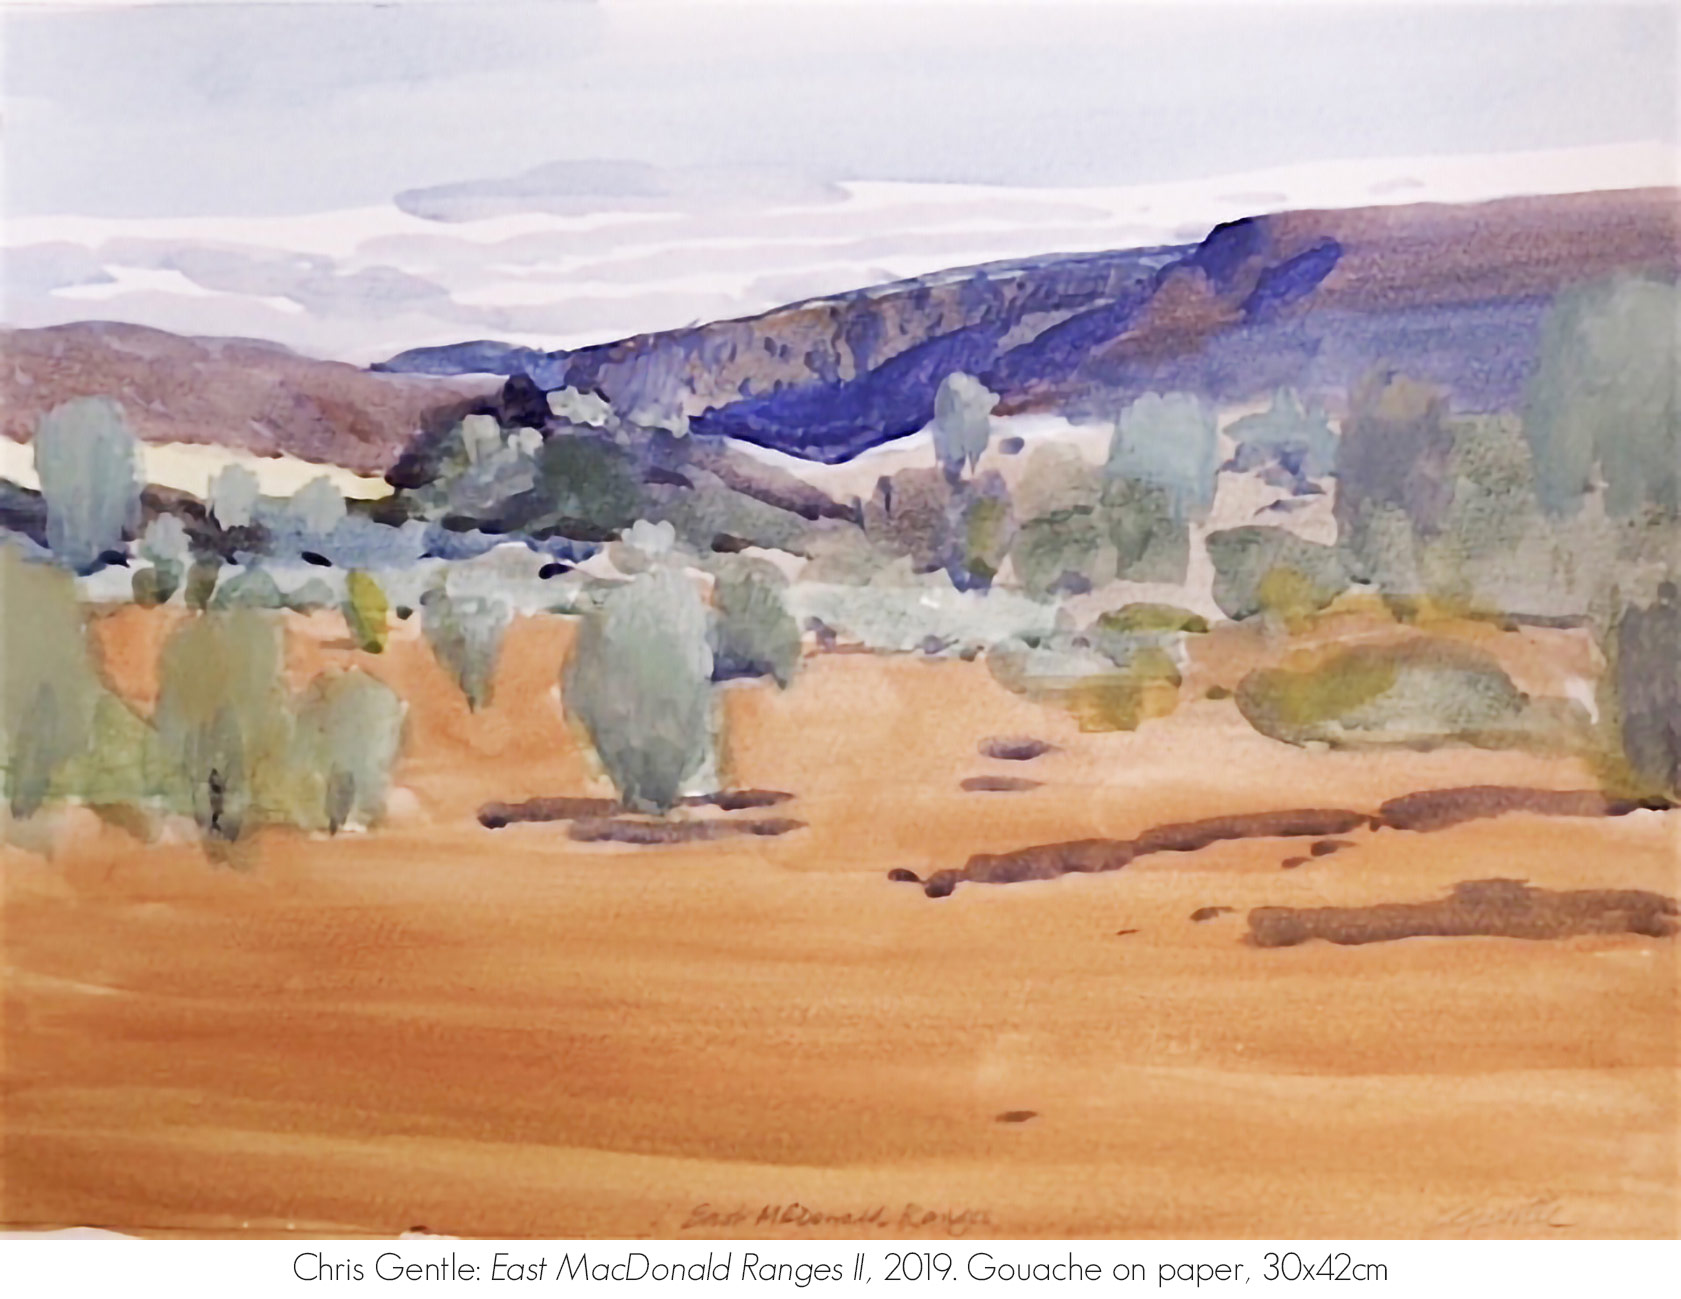 Artsite Galleries Exhibition | REFLECTIONS OF AN ANCIENT LAND: The MacDonnell Ranges | Chris Gentle. Exhibition is Open June - July 2020. Saturdays and Sundays 11am - 5pm and By Appointment Monday - Friday.